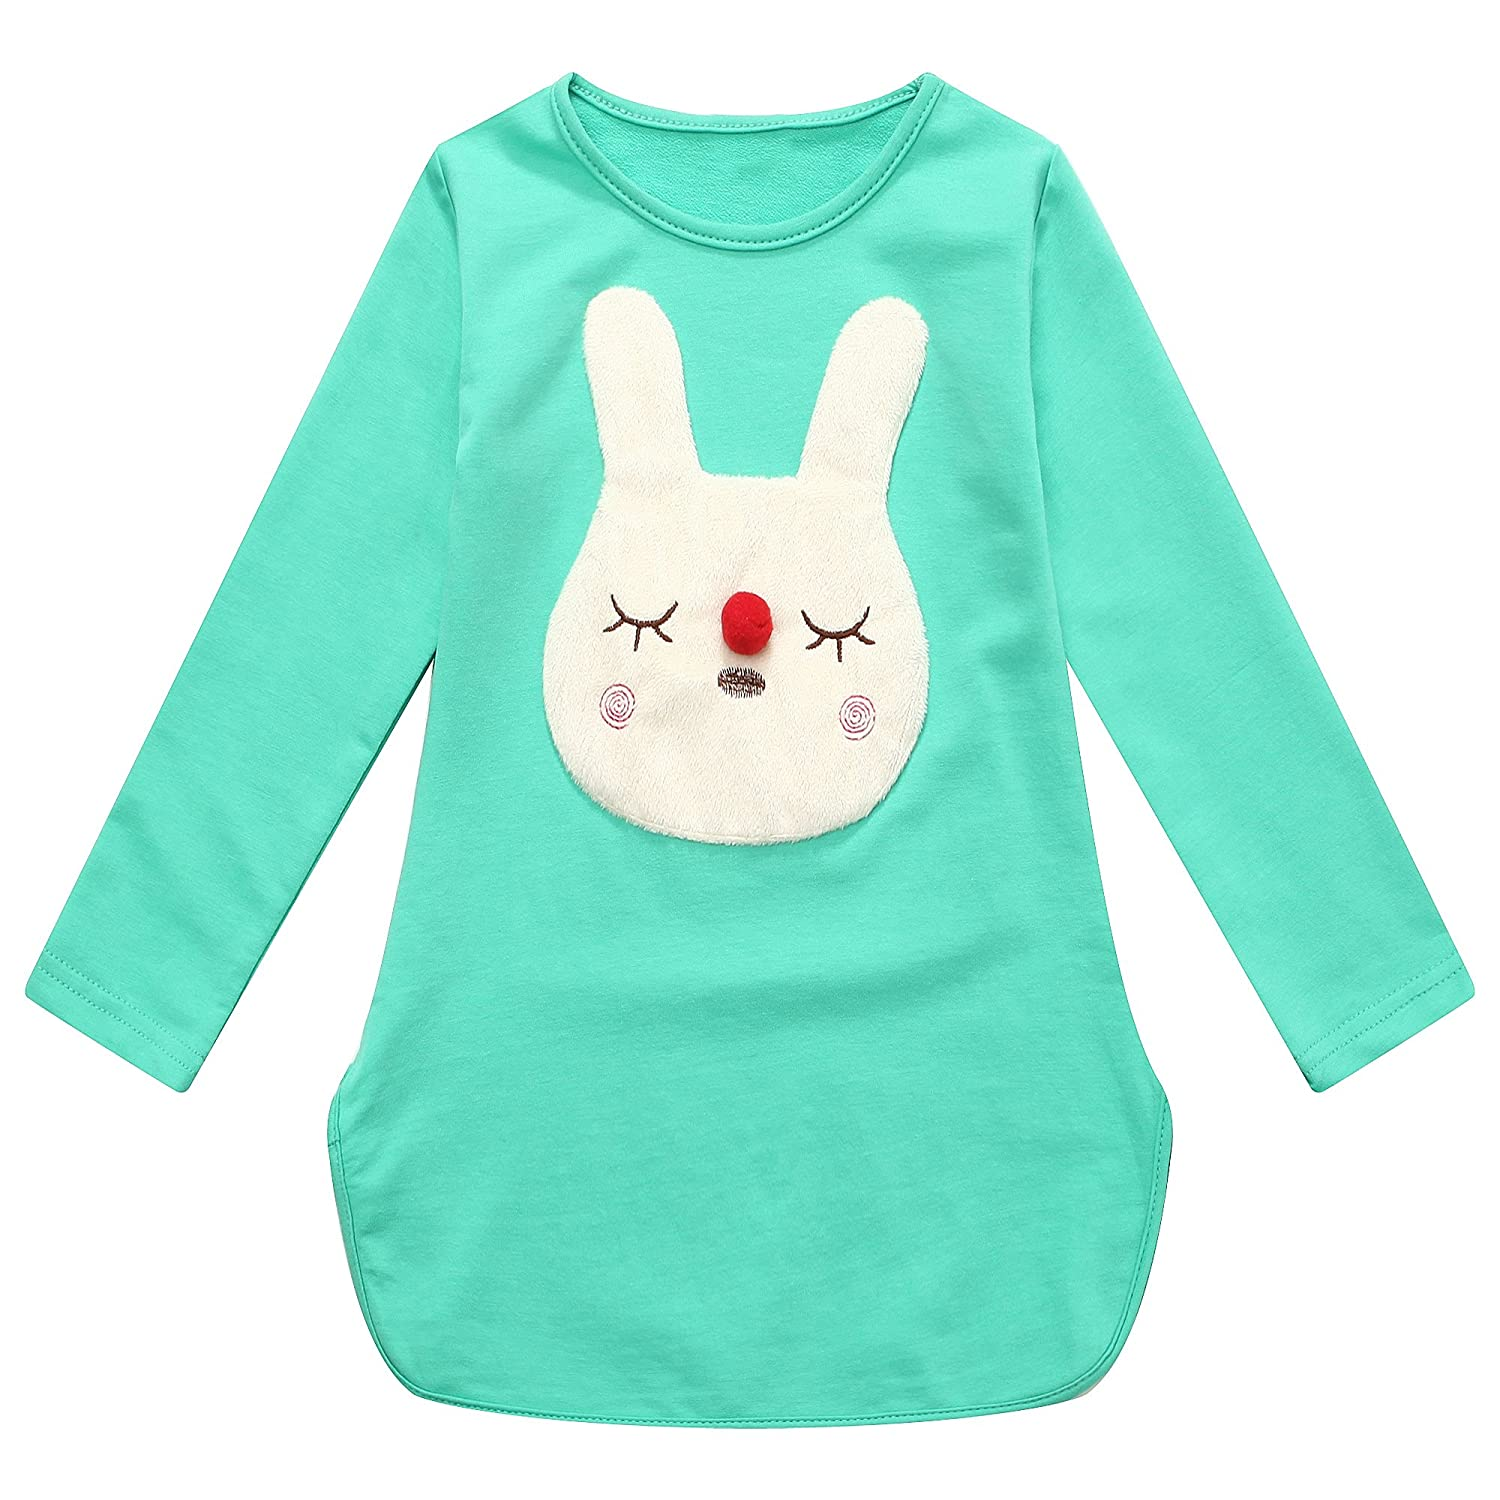 Richie House Girls Green Bunny Applique Long Sleeved Top 2-10 RH1429